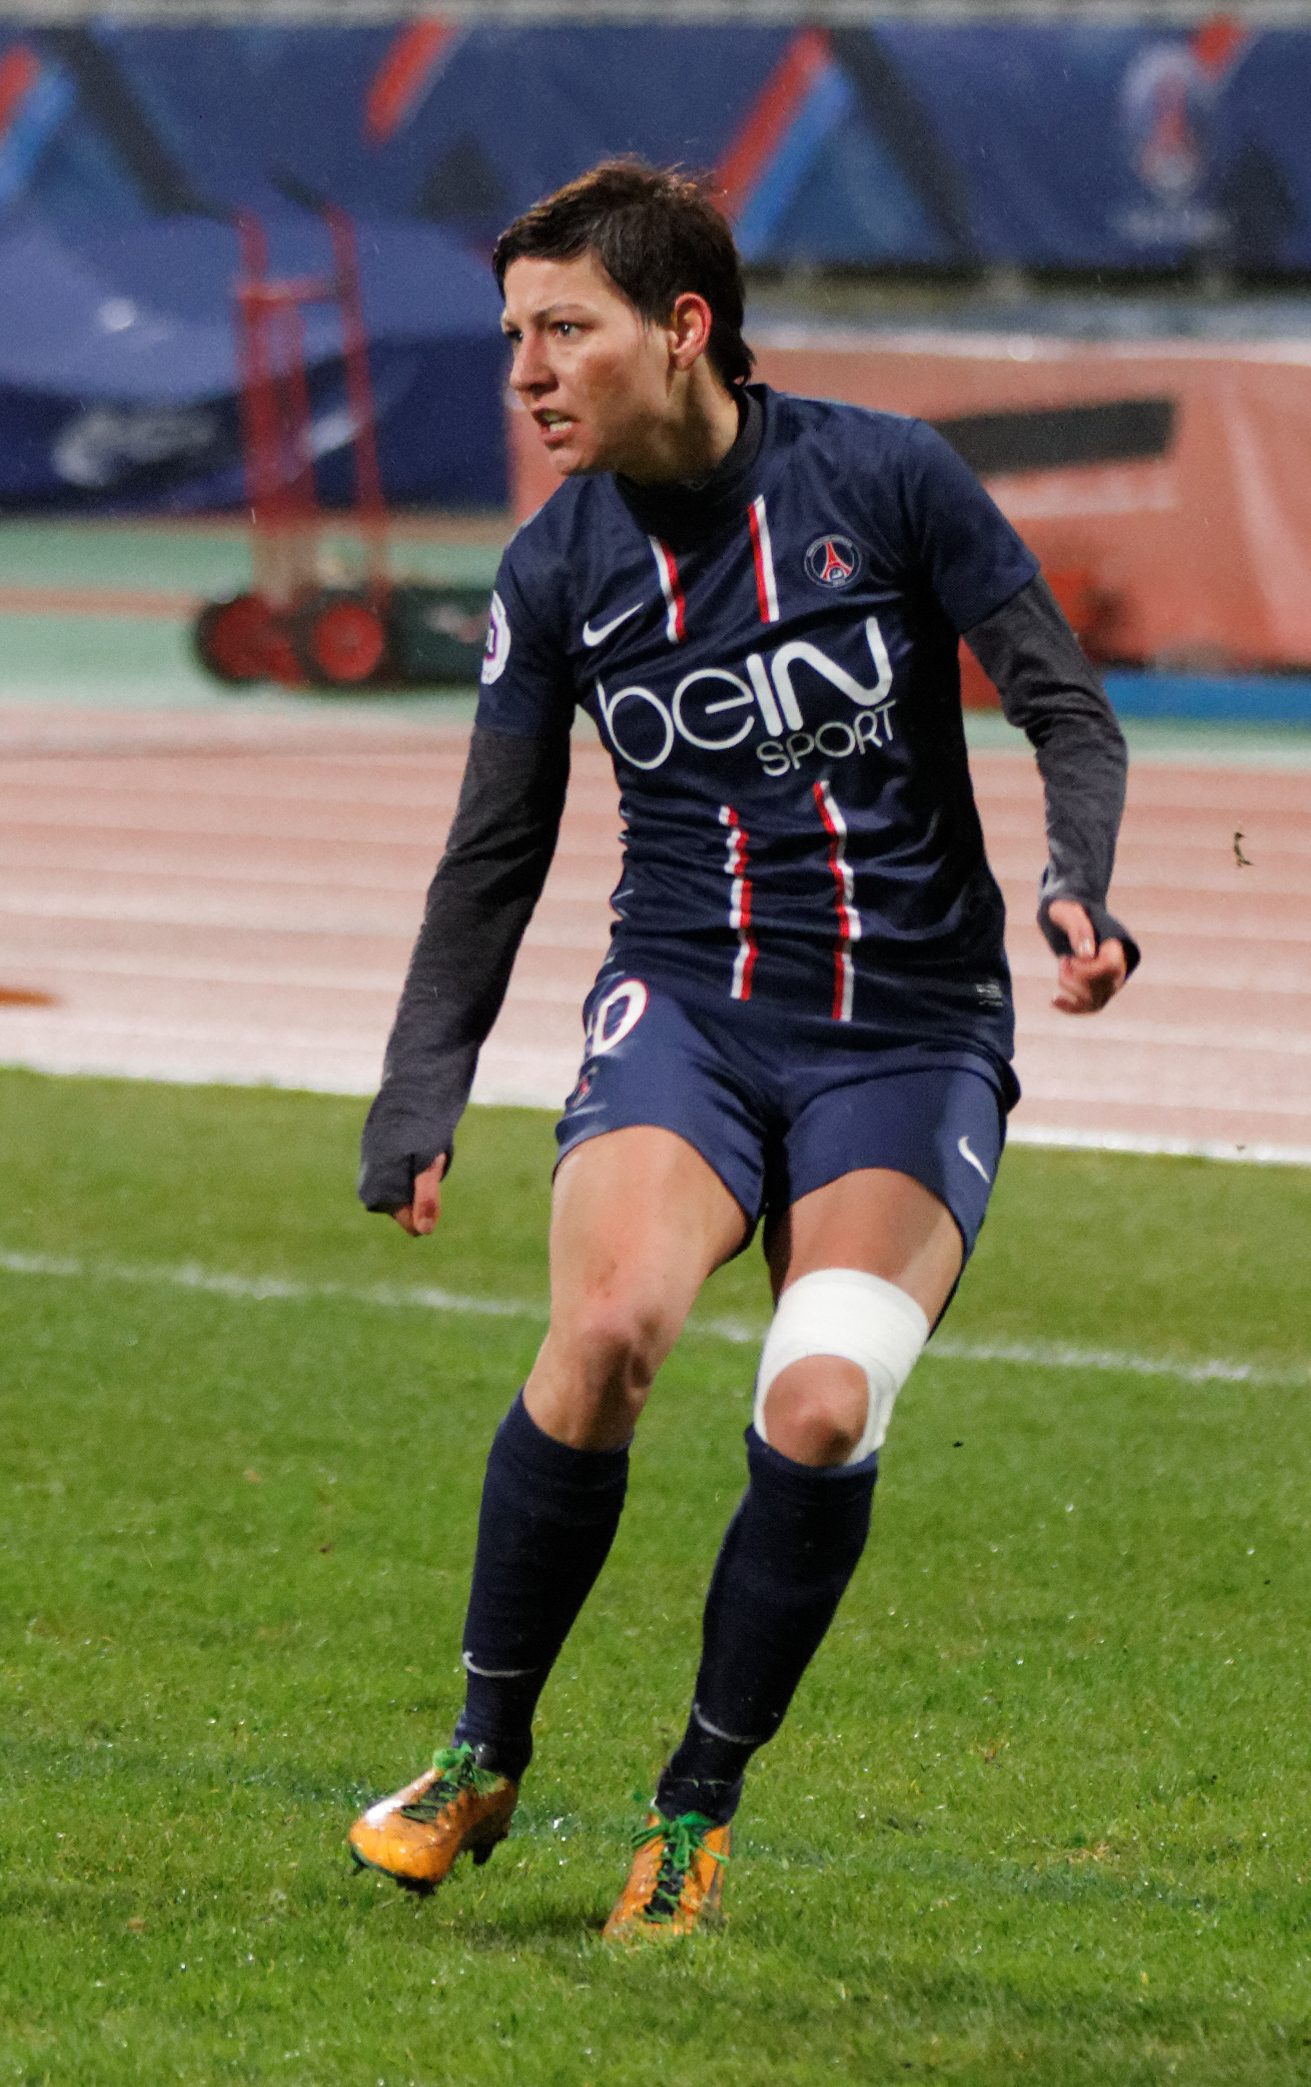 montpellier-psg - photo #42